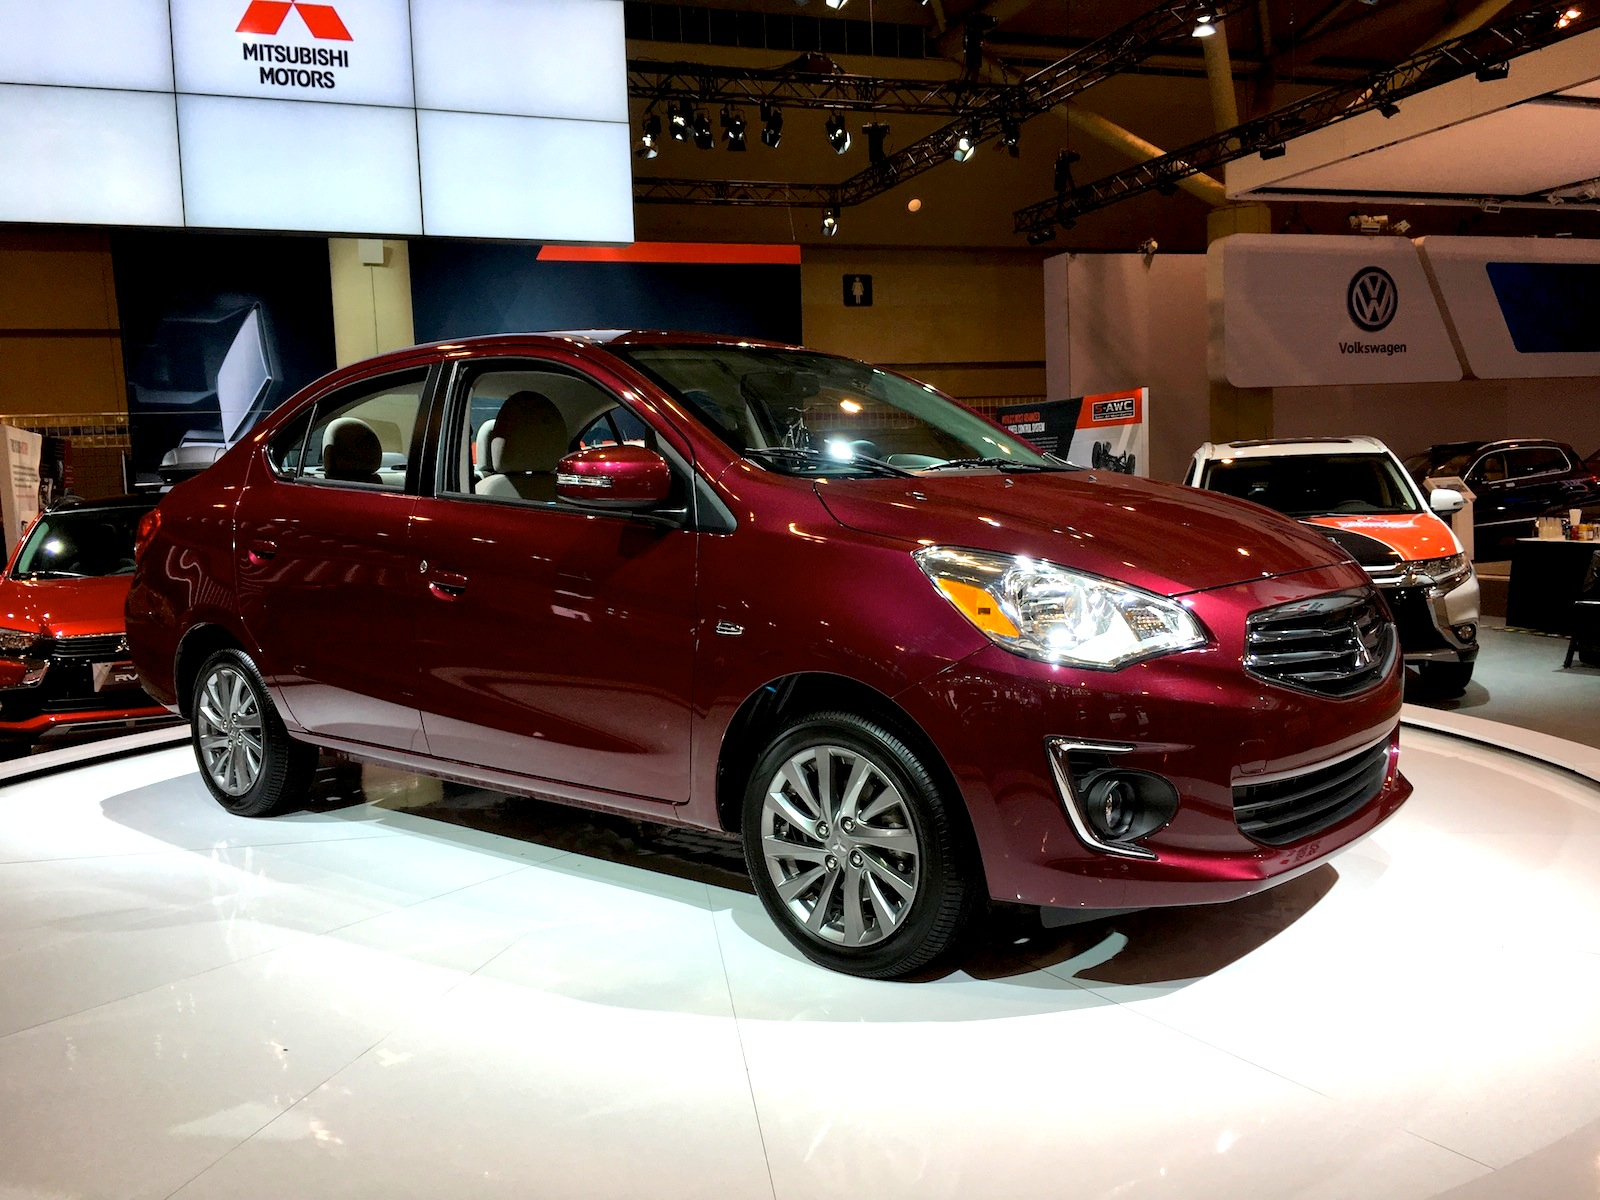 2017 Mitsubishi Mirage G4 Sedan Revealed » AutoGuide.com News